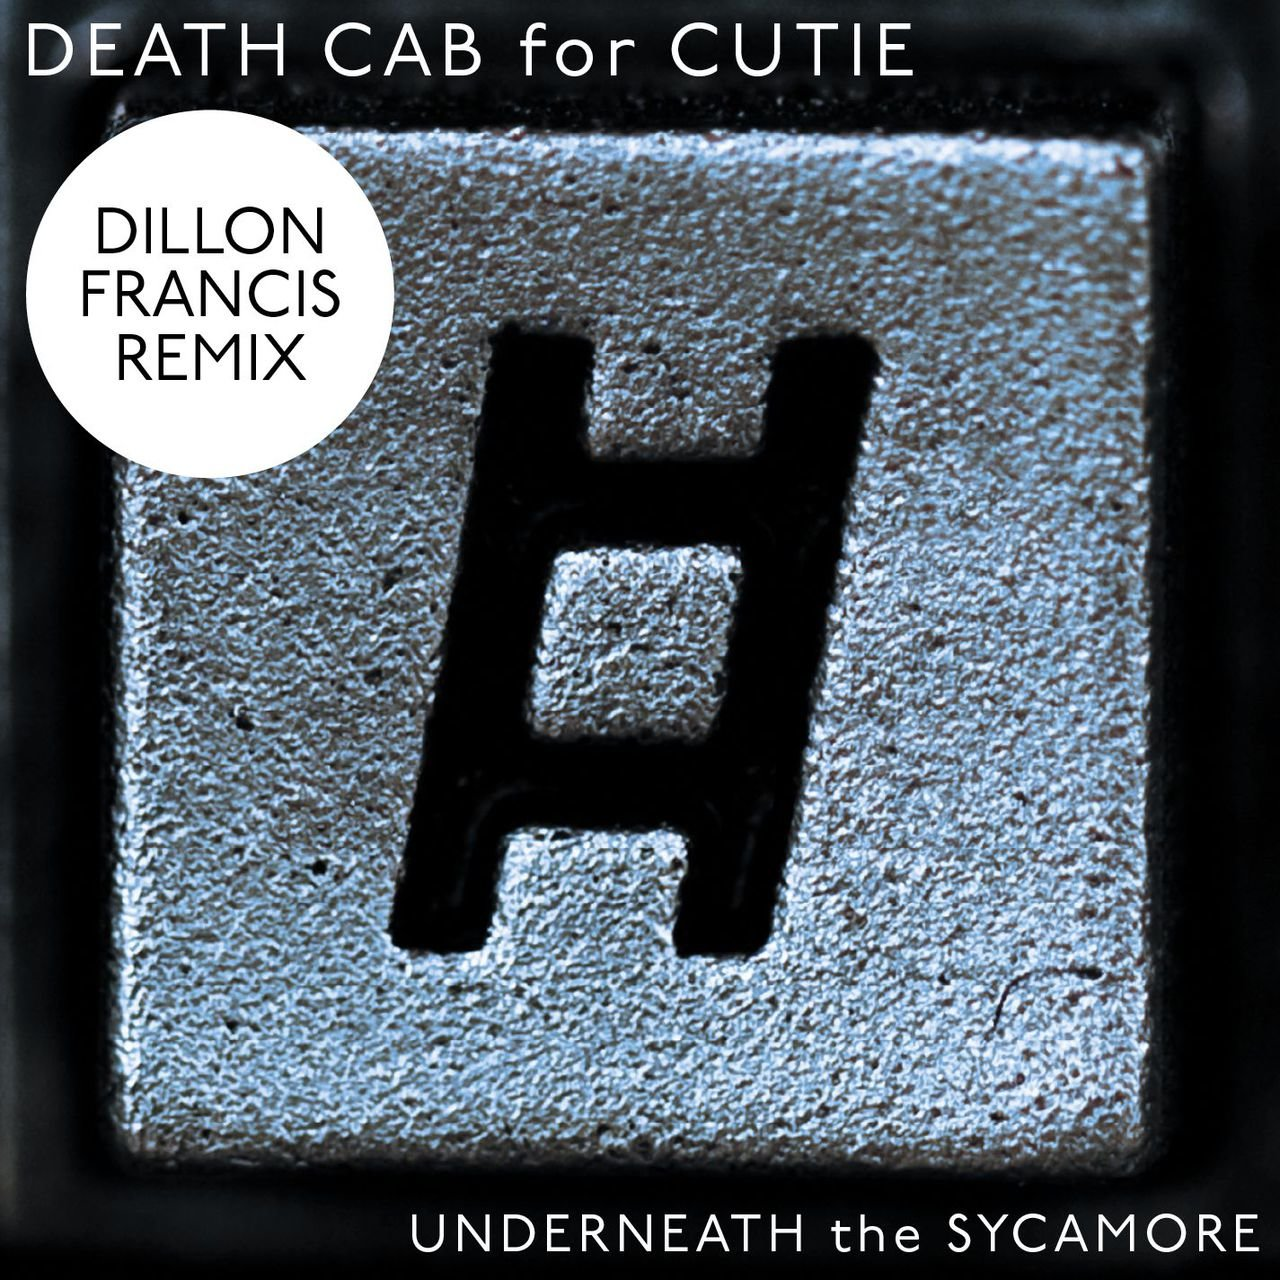 Underneath The Sycamore (Dillon Francis Remix)